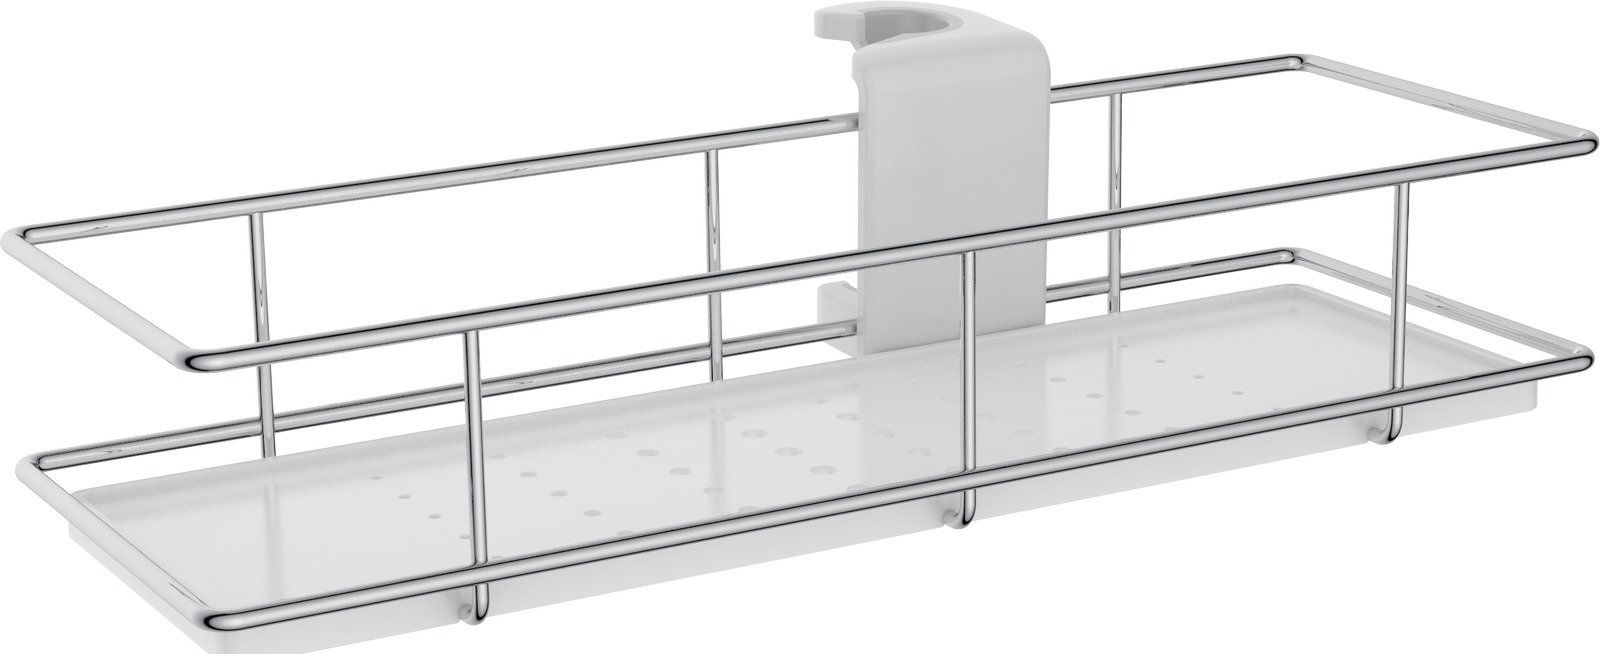 Cassellie Riser Rail Shower Basket - 300mm Wide - Chrome